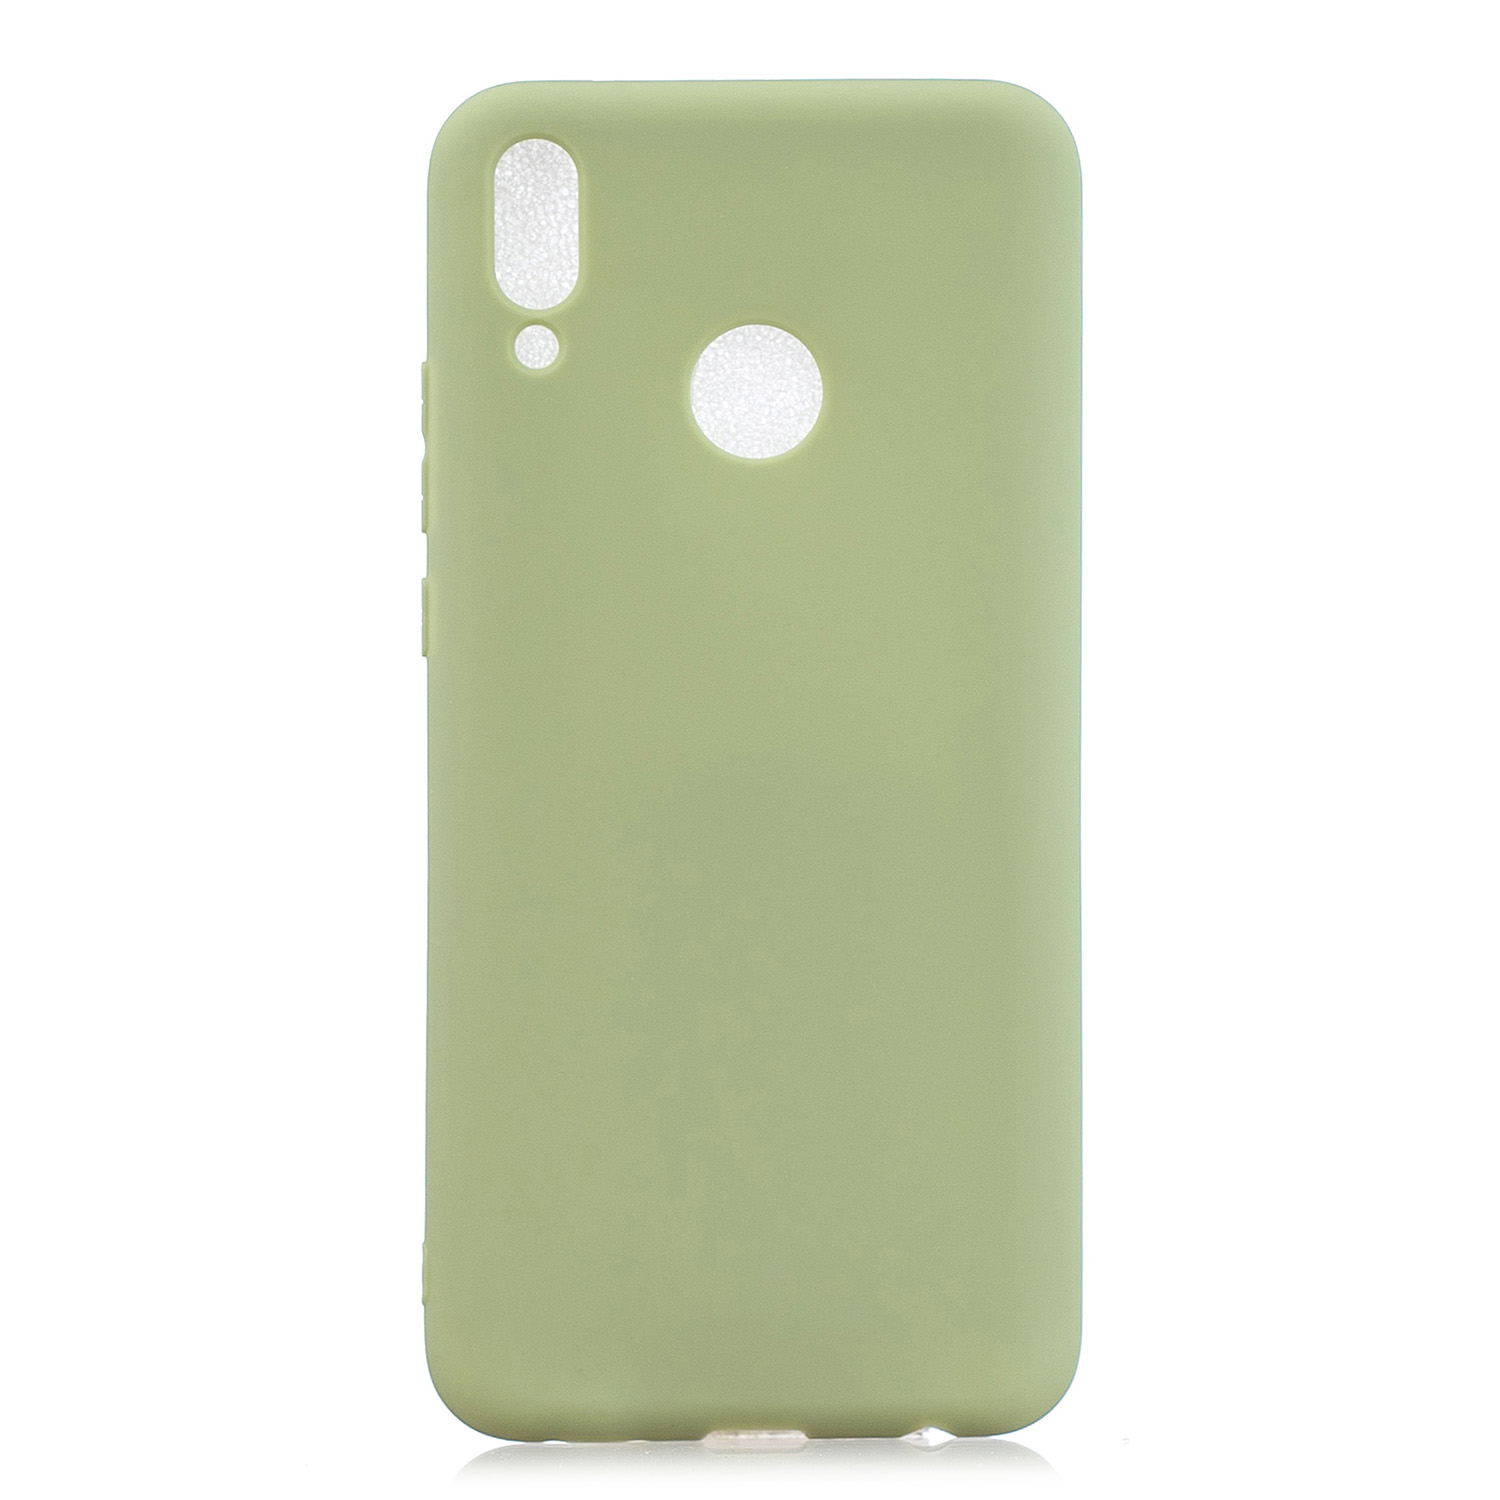 For HUAWEI Y9 2019 Lovely Candy Color Matte TPU Anti-scratch Non-slip Protective Cover Back Case 10